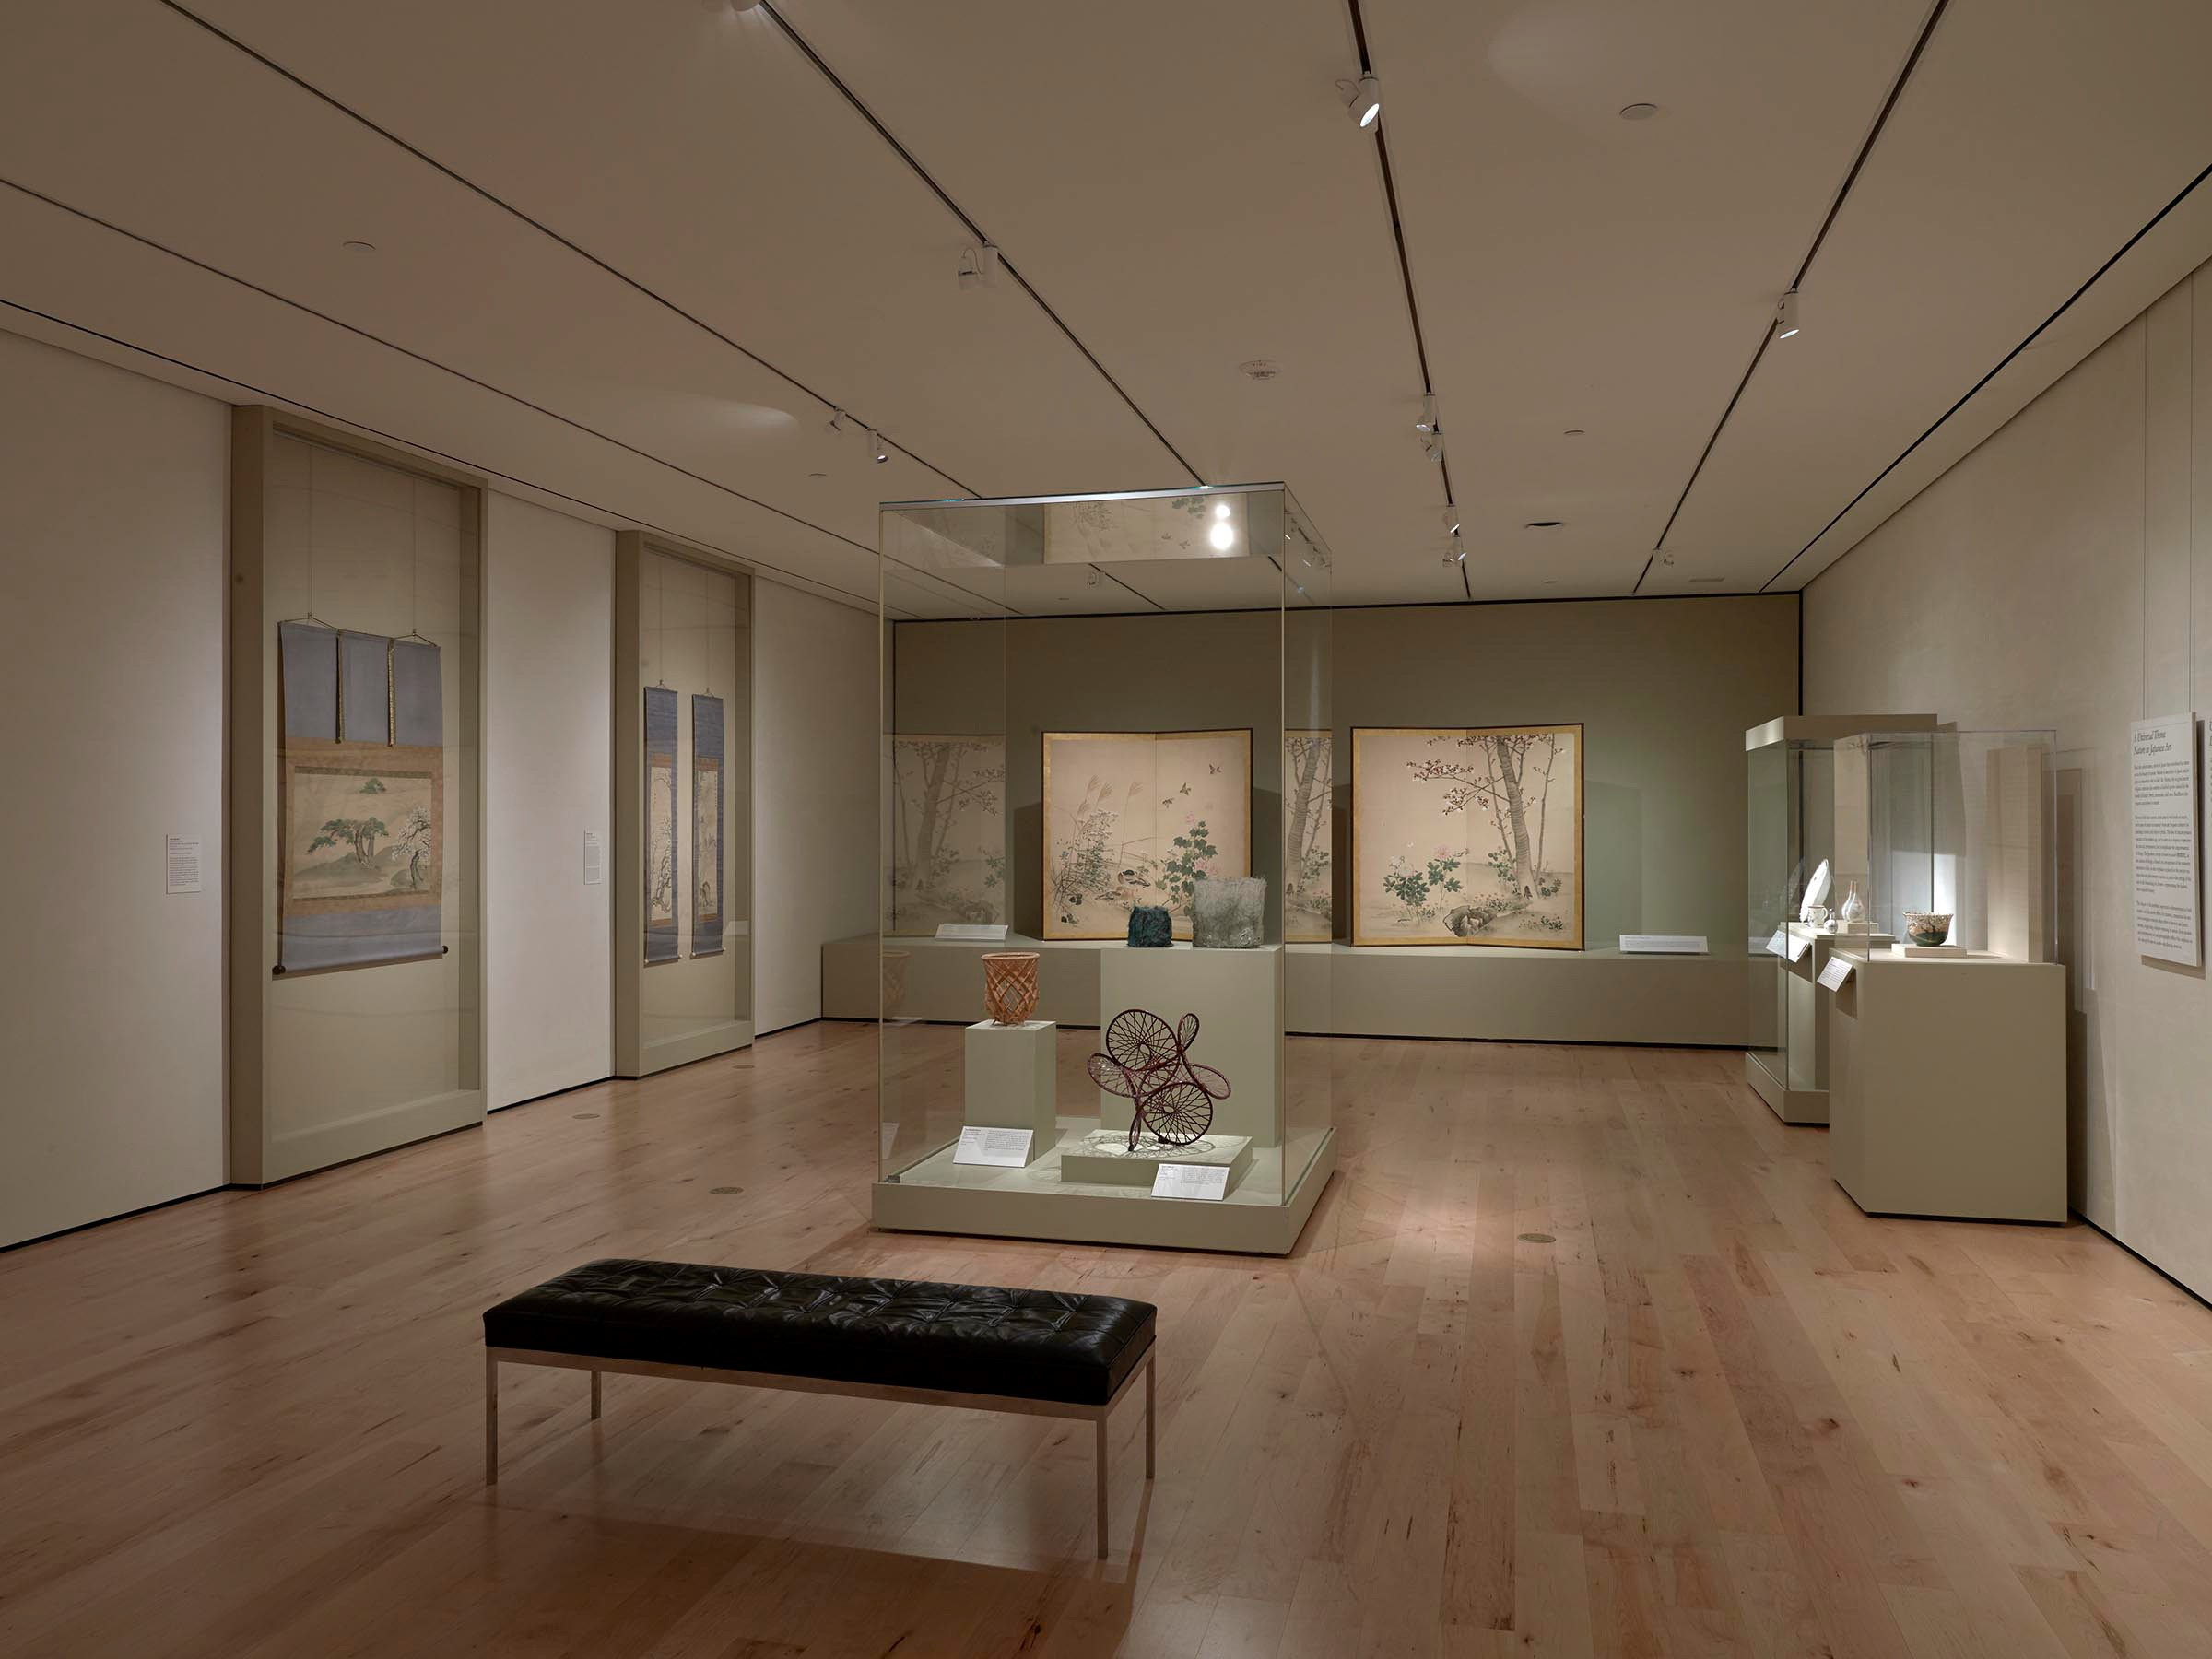 Design Gallery Live Art You Can Live With A Look Inside The Re Installed Arts Of